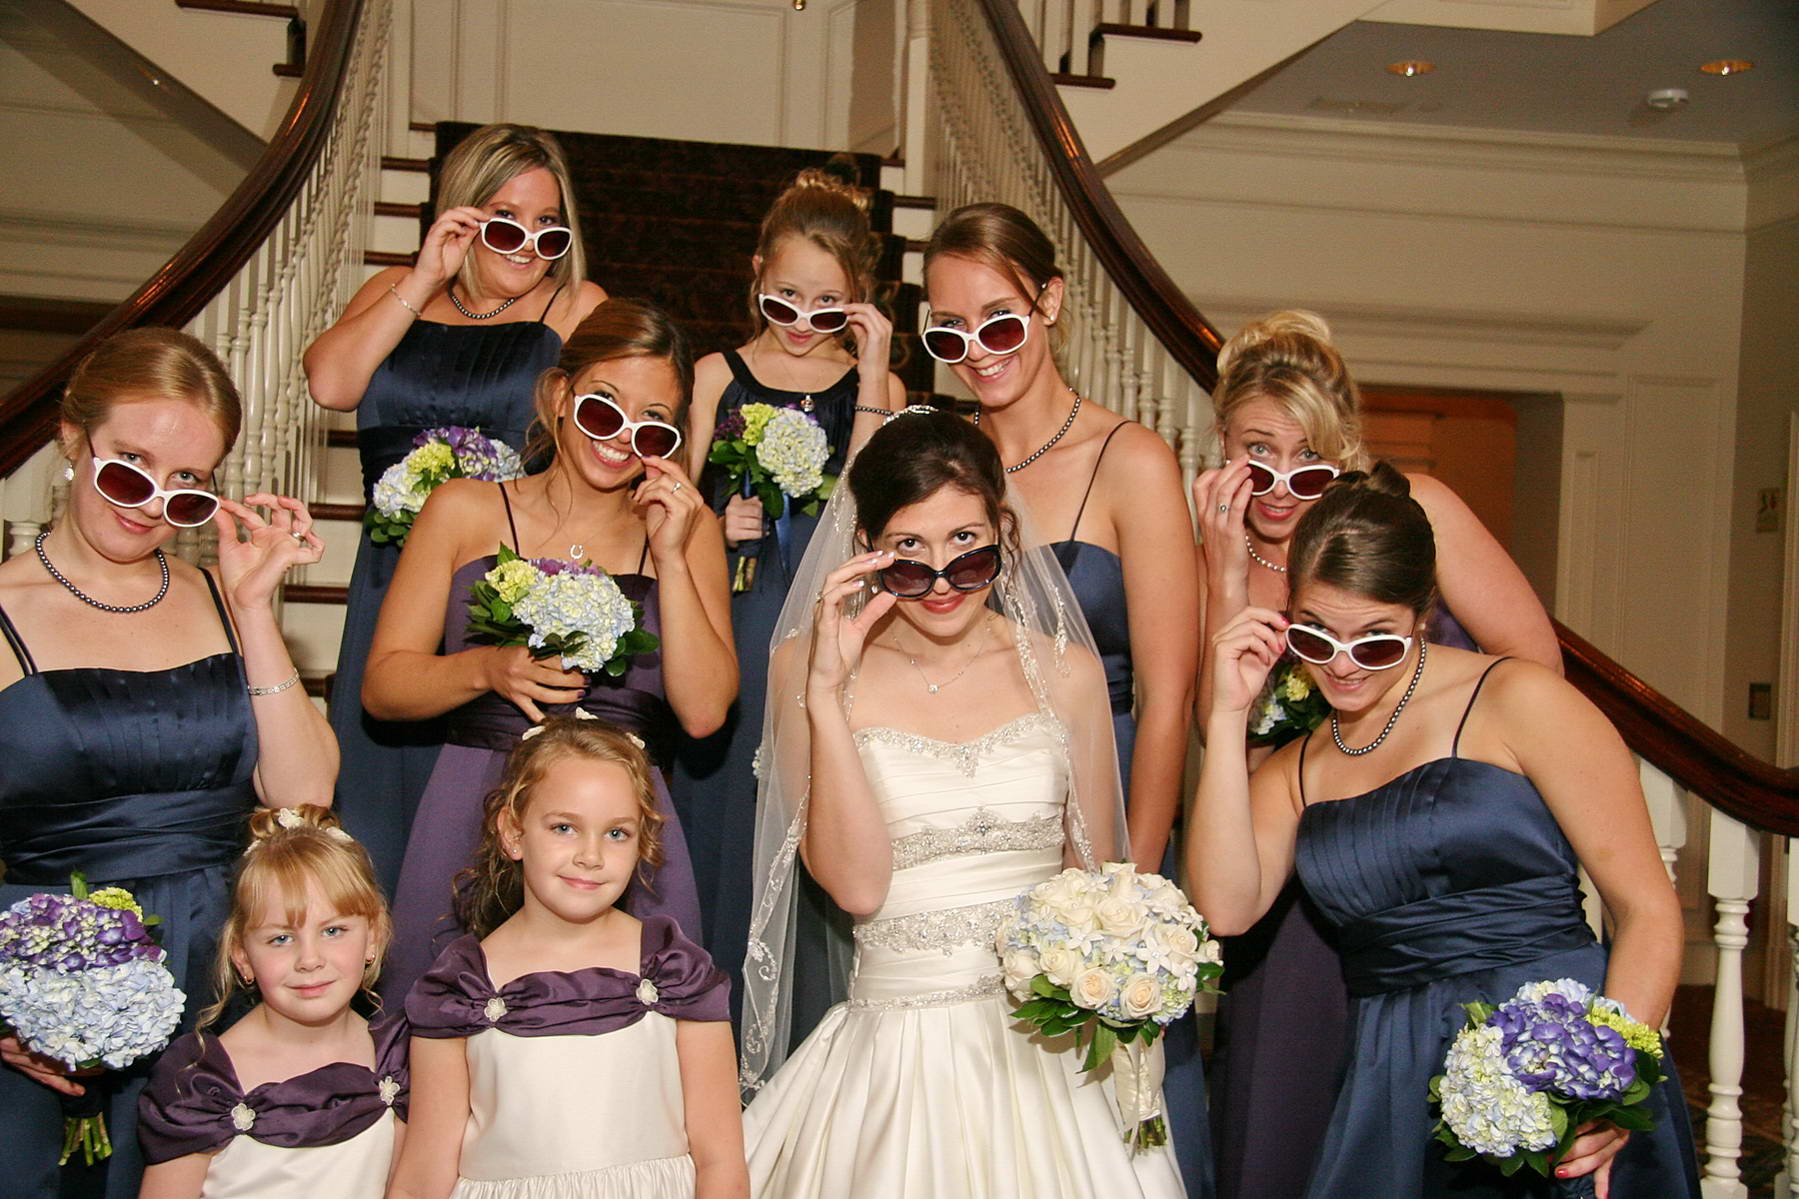 Bridesmaids in Disguise